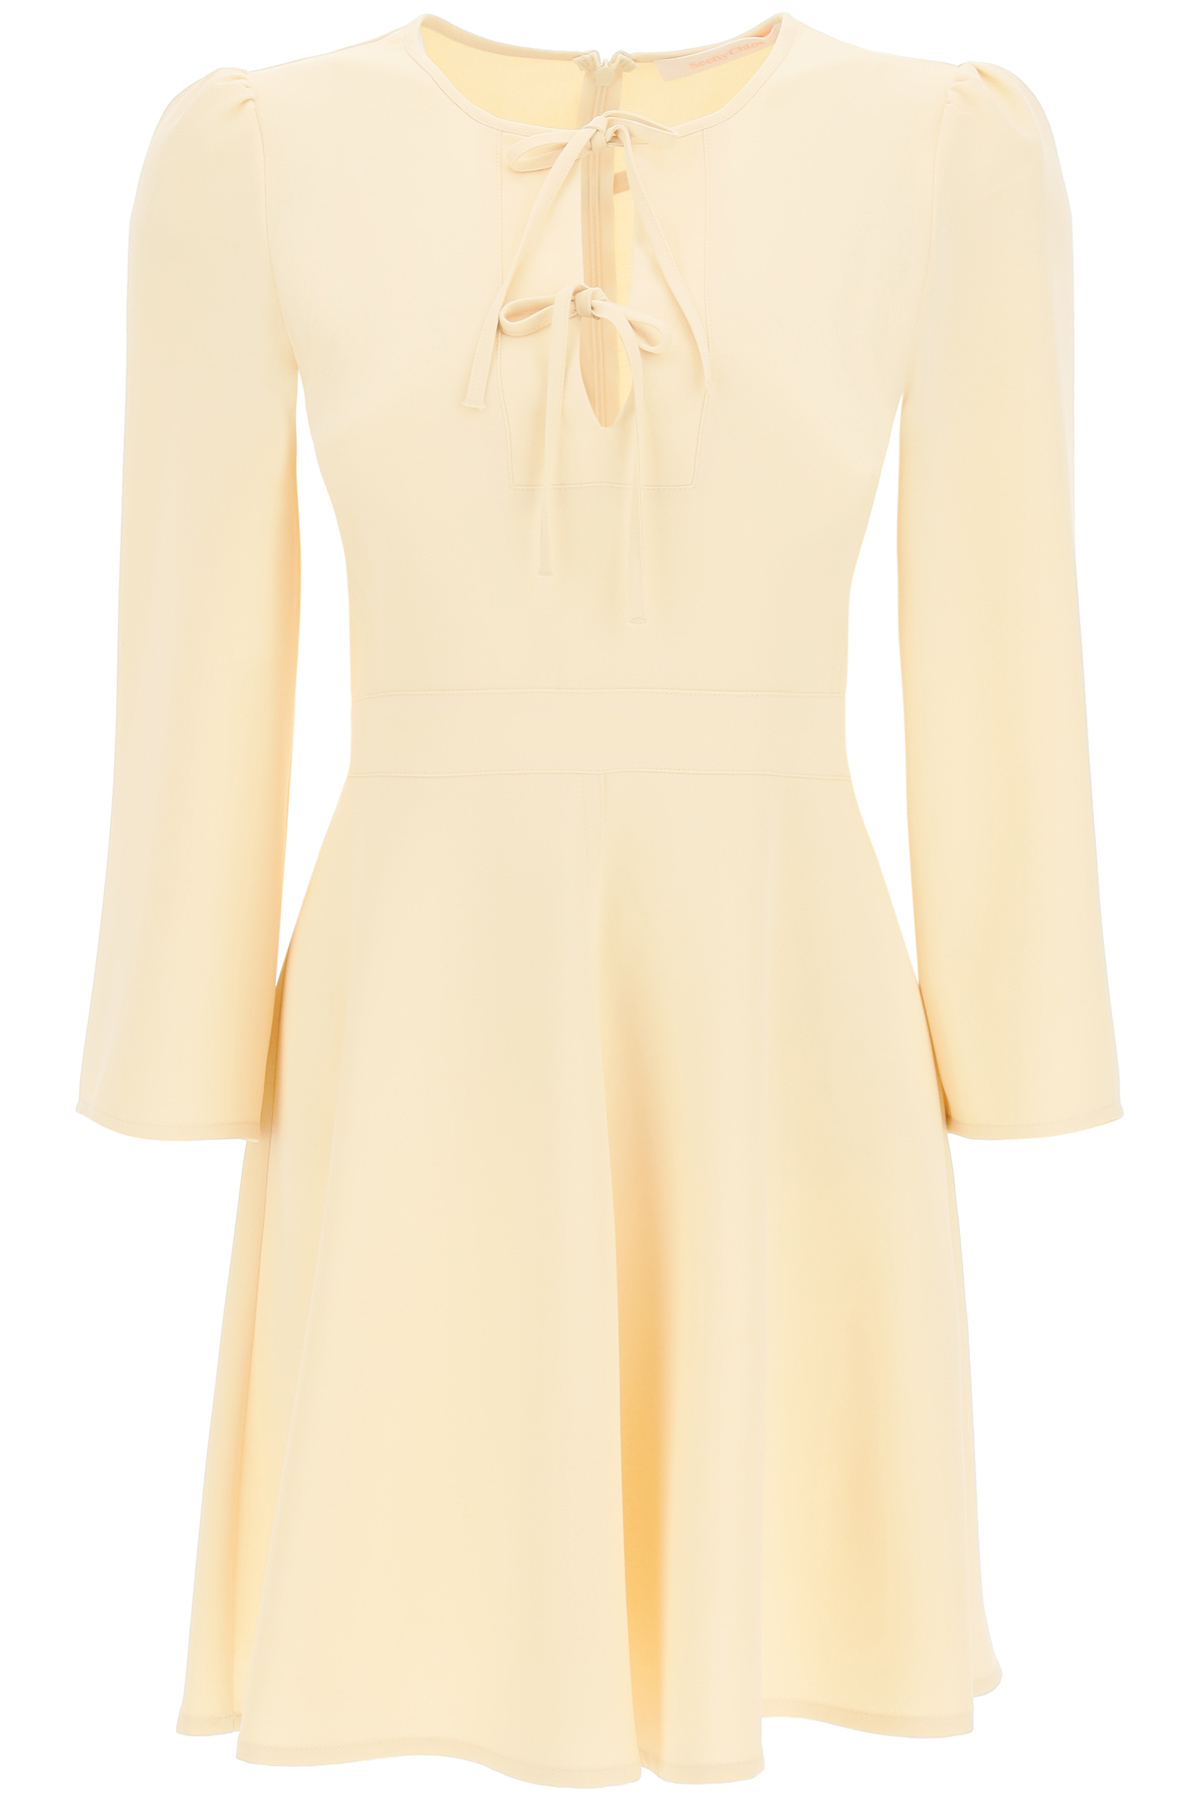 See By Chloé CREPE DRESS WITH BOWS